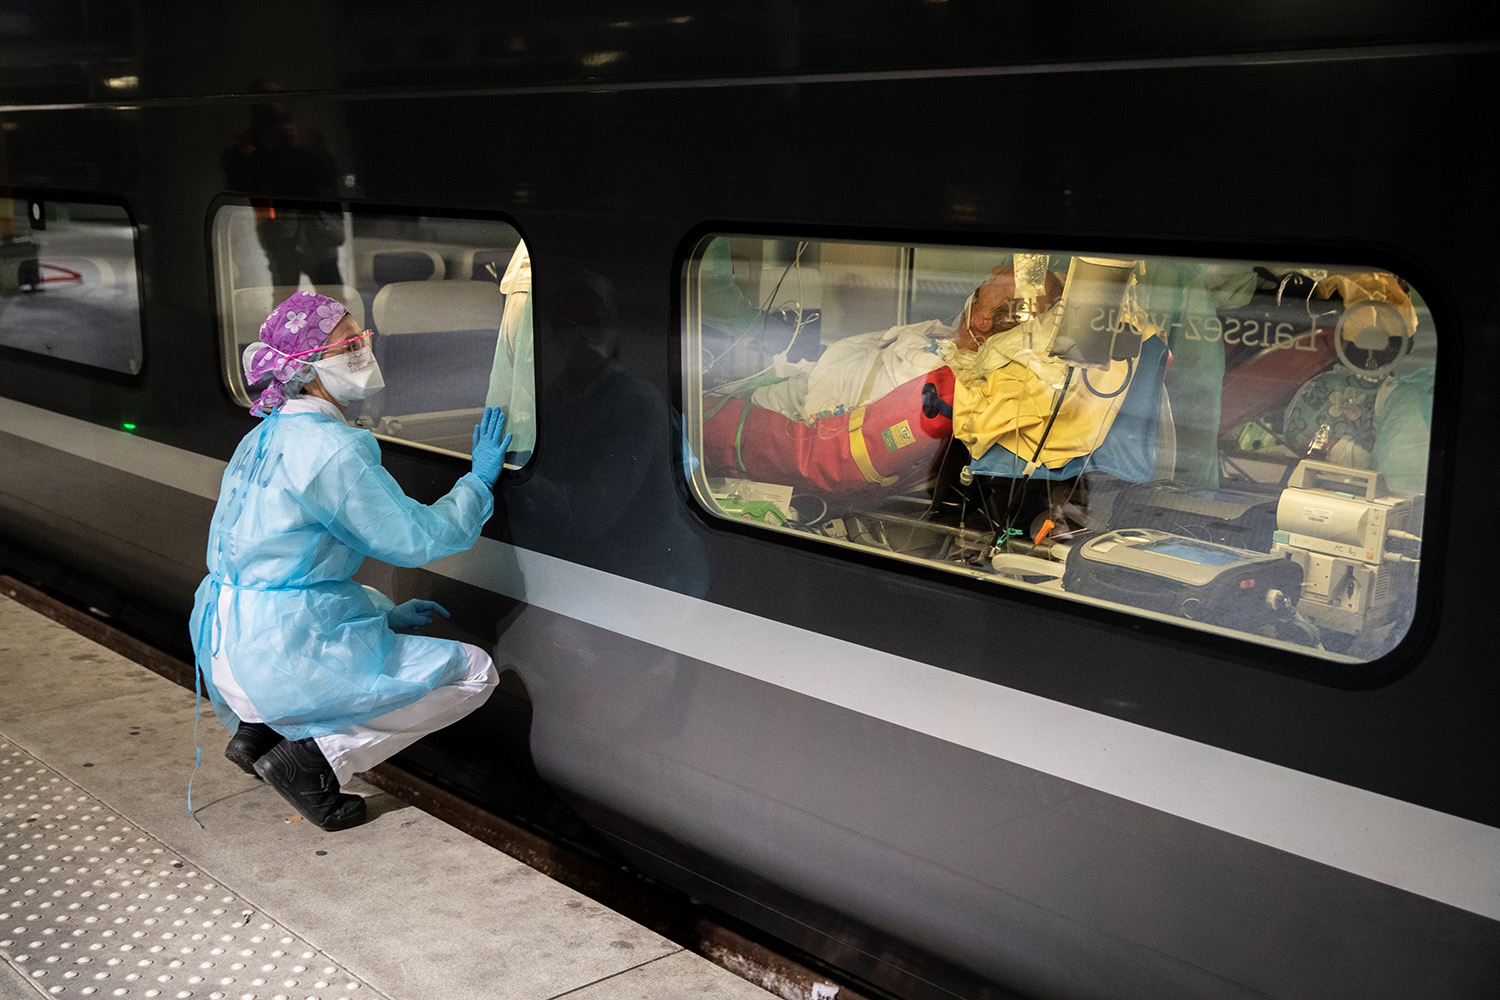 From a platform of the Gare d'Austerlitz train station in Paris on April 1, a medical worker looks through the window of a medicalized TGV high-speed train before its evacuation of coronavirus patients. The patients were being transferred from Paris's hospitals to those in the Brittany region of western France, where the outbreak has so far been limited. THOMAS SAMSON/POOL/AFP via Getty Images